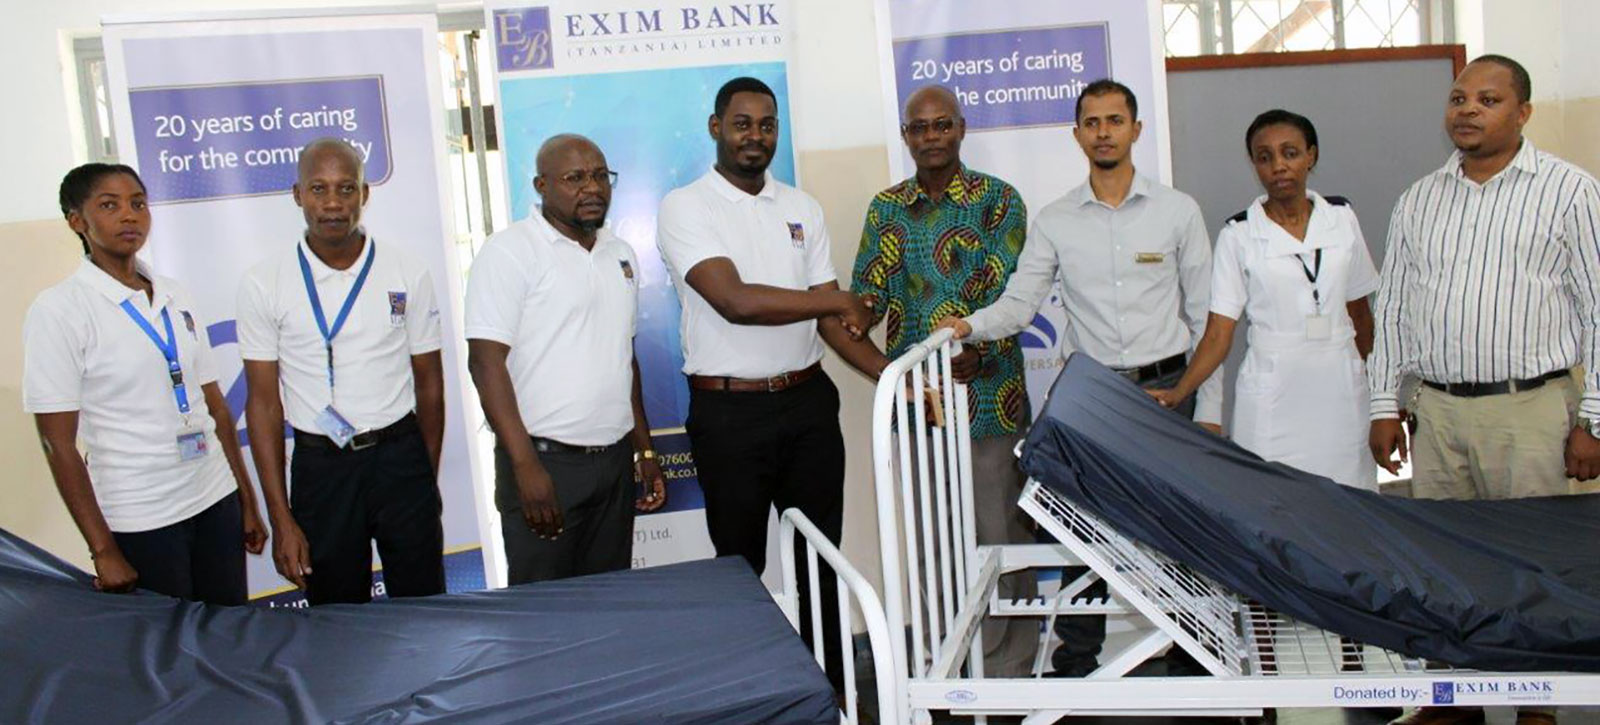 Relief to the Tanga Referral Hospital through Exim Bank's Year-long Campaign